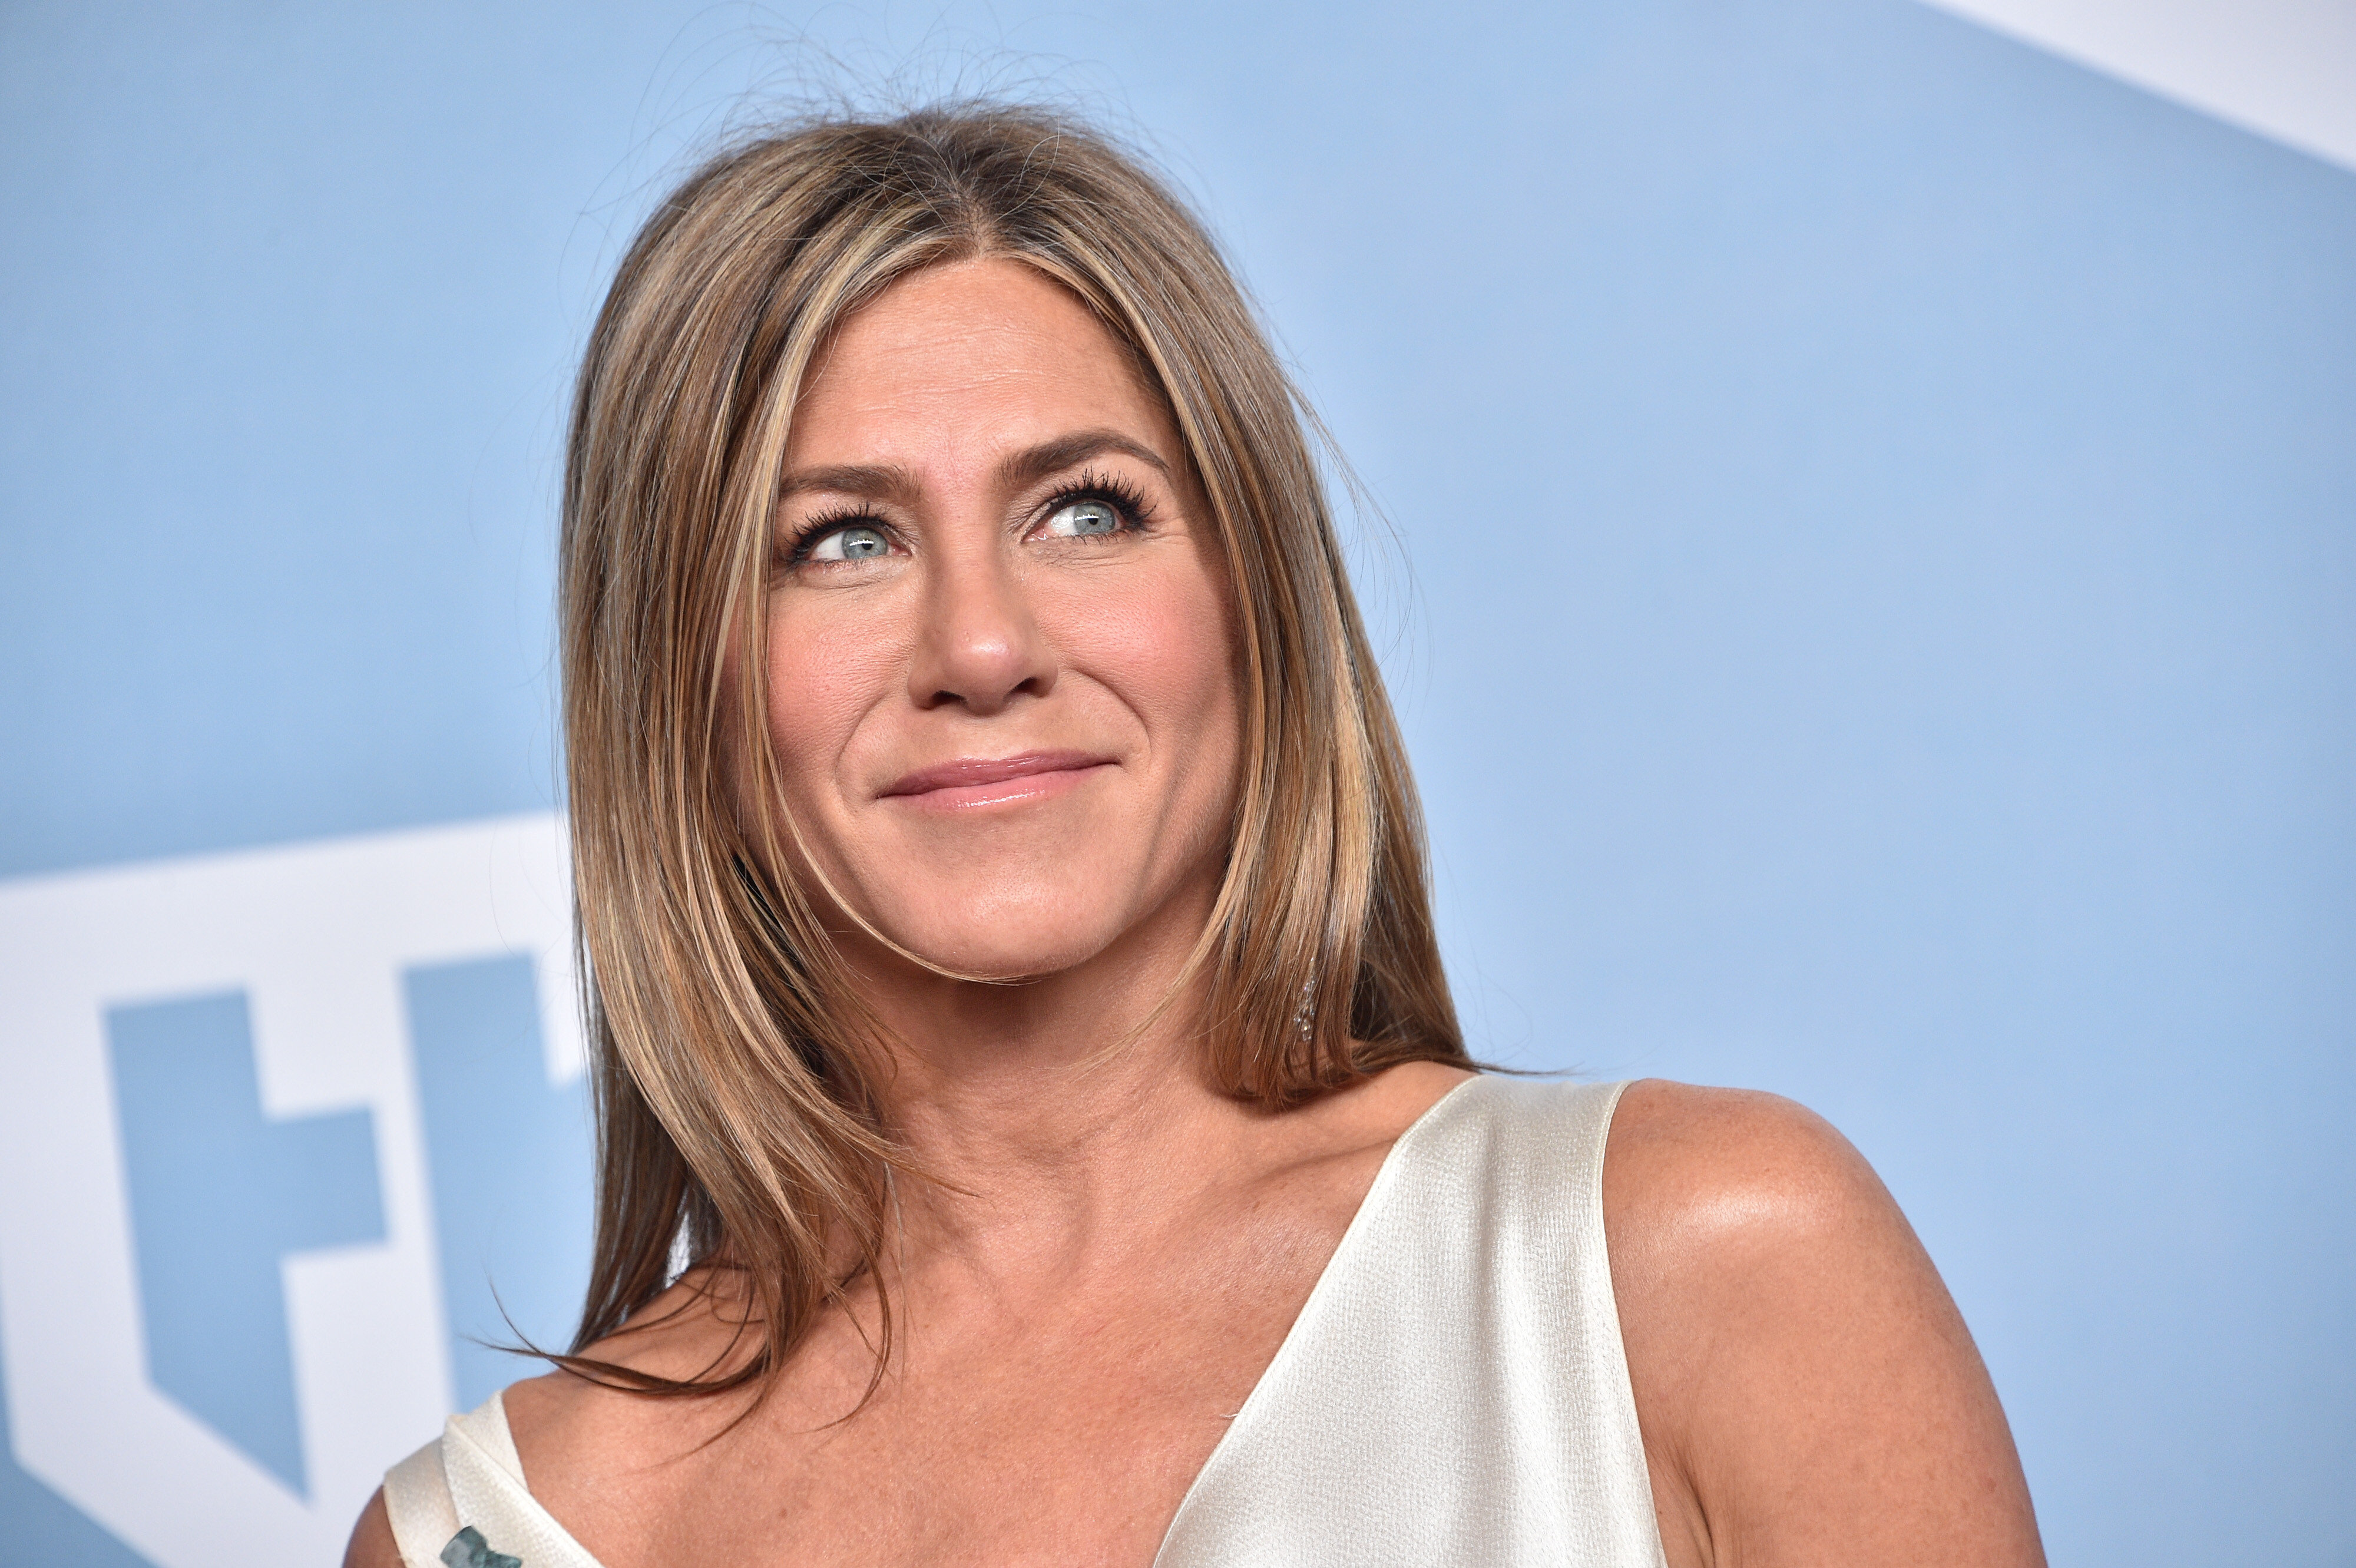 Jennifer Aniston defends staying away from the unvaccinated